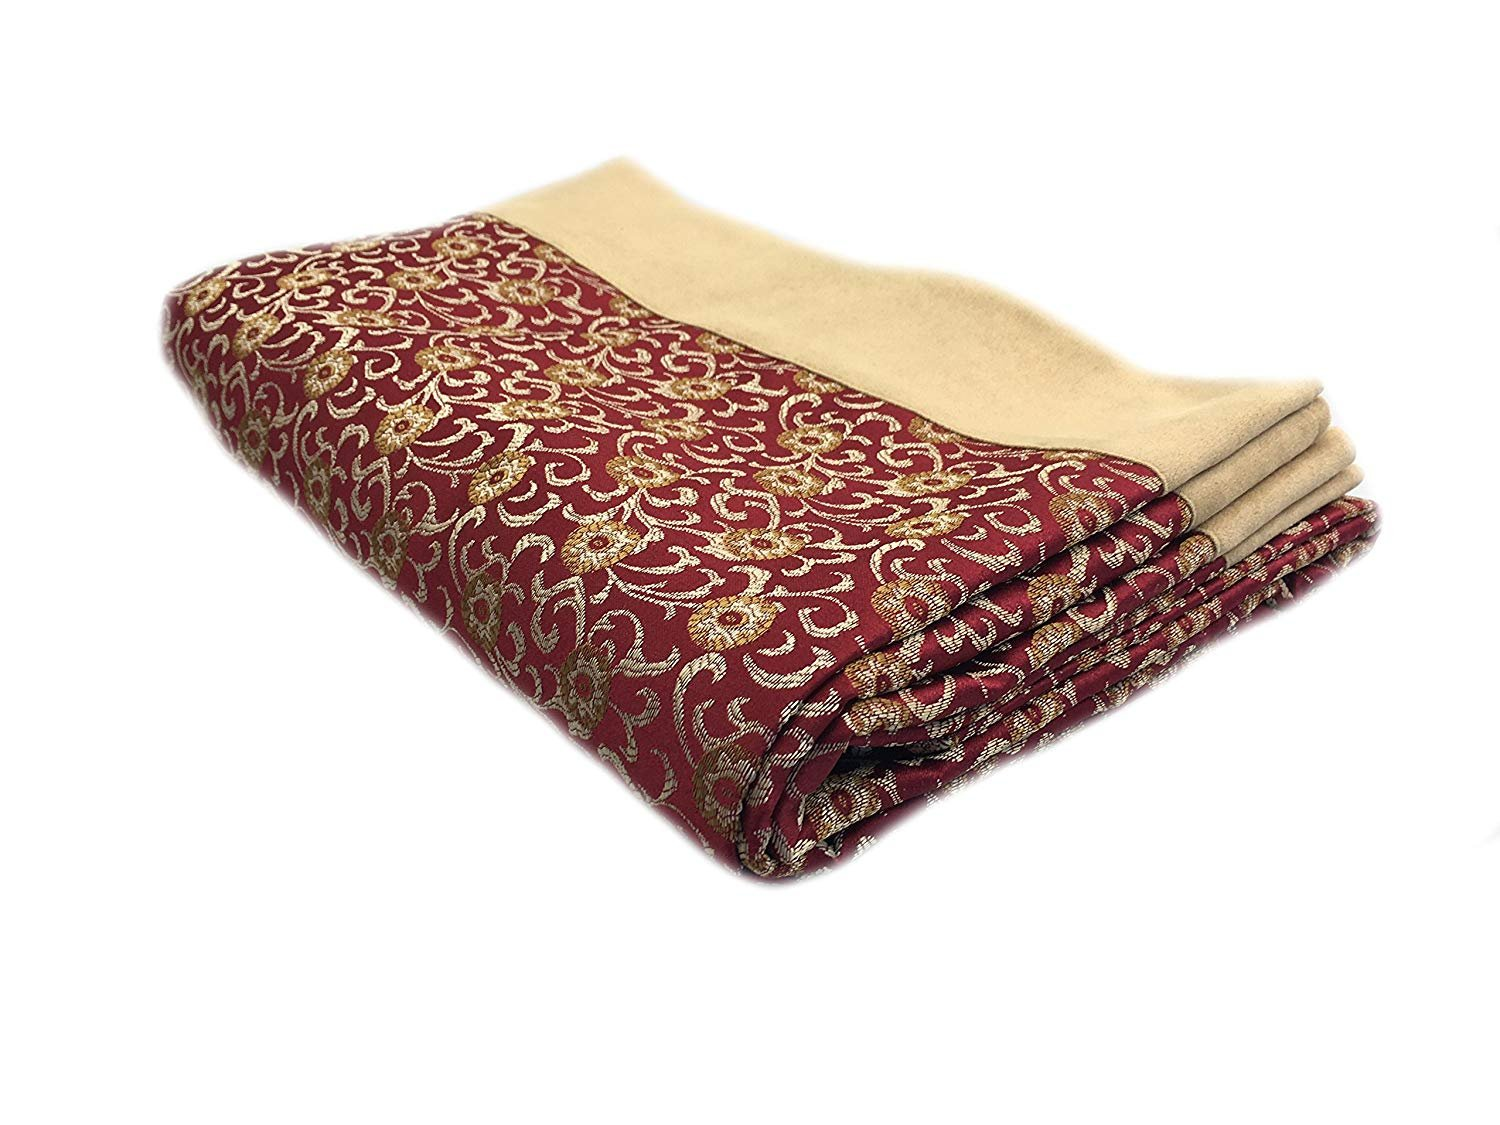 Koni Bed Throw, Red, Tan and Gold, Suede Edge, RED King 100x40 in.